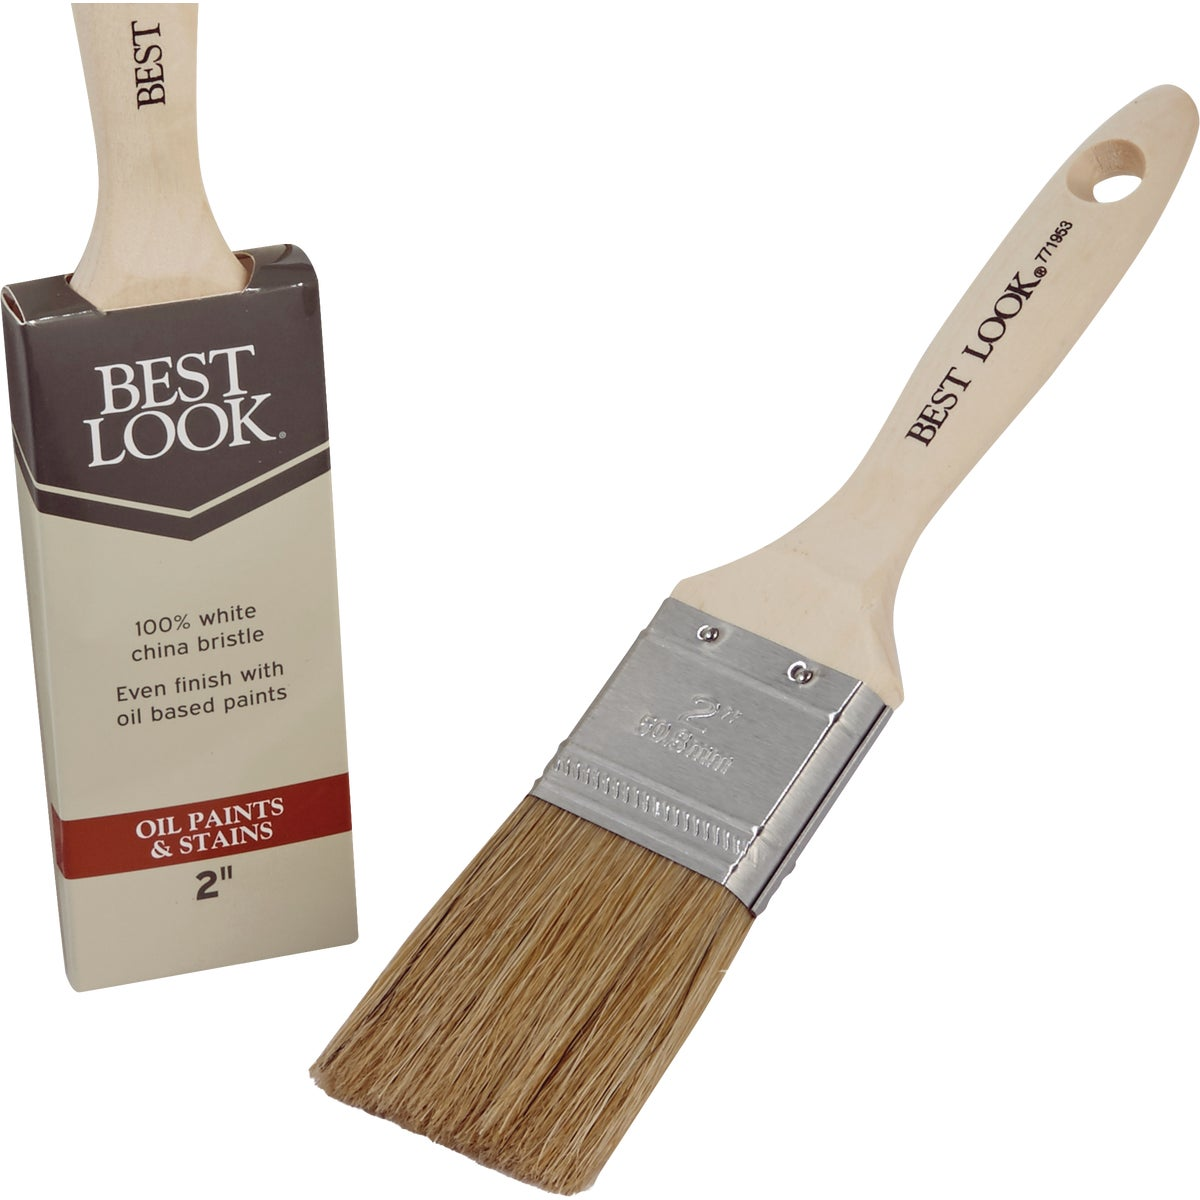 "2"" OC FS WHT BRSTL BRUSH - 1769593 by Shur Line"